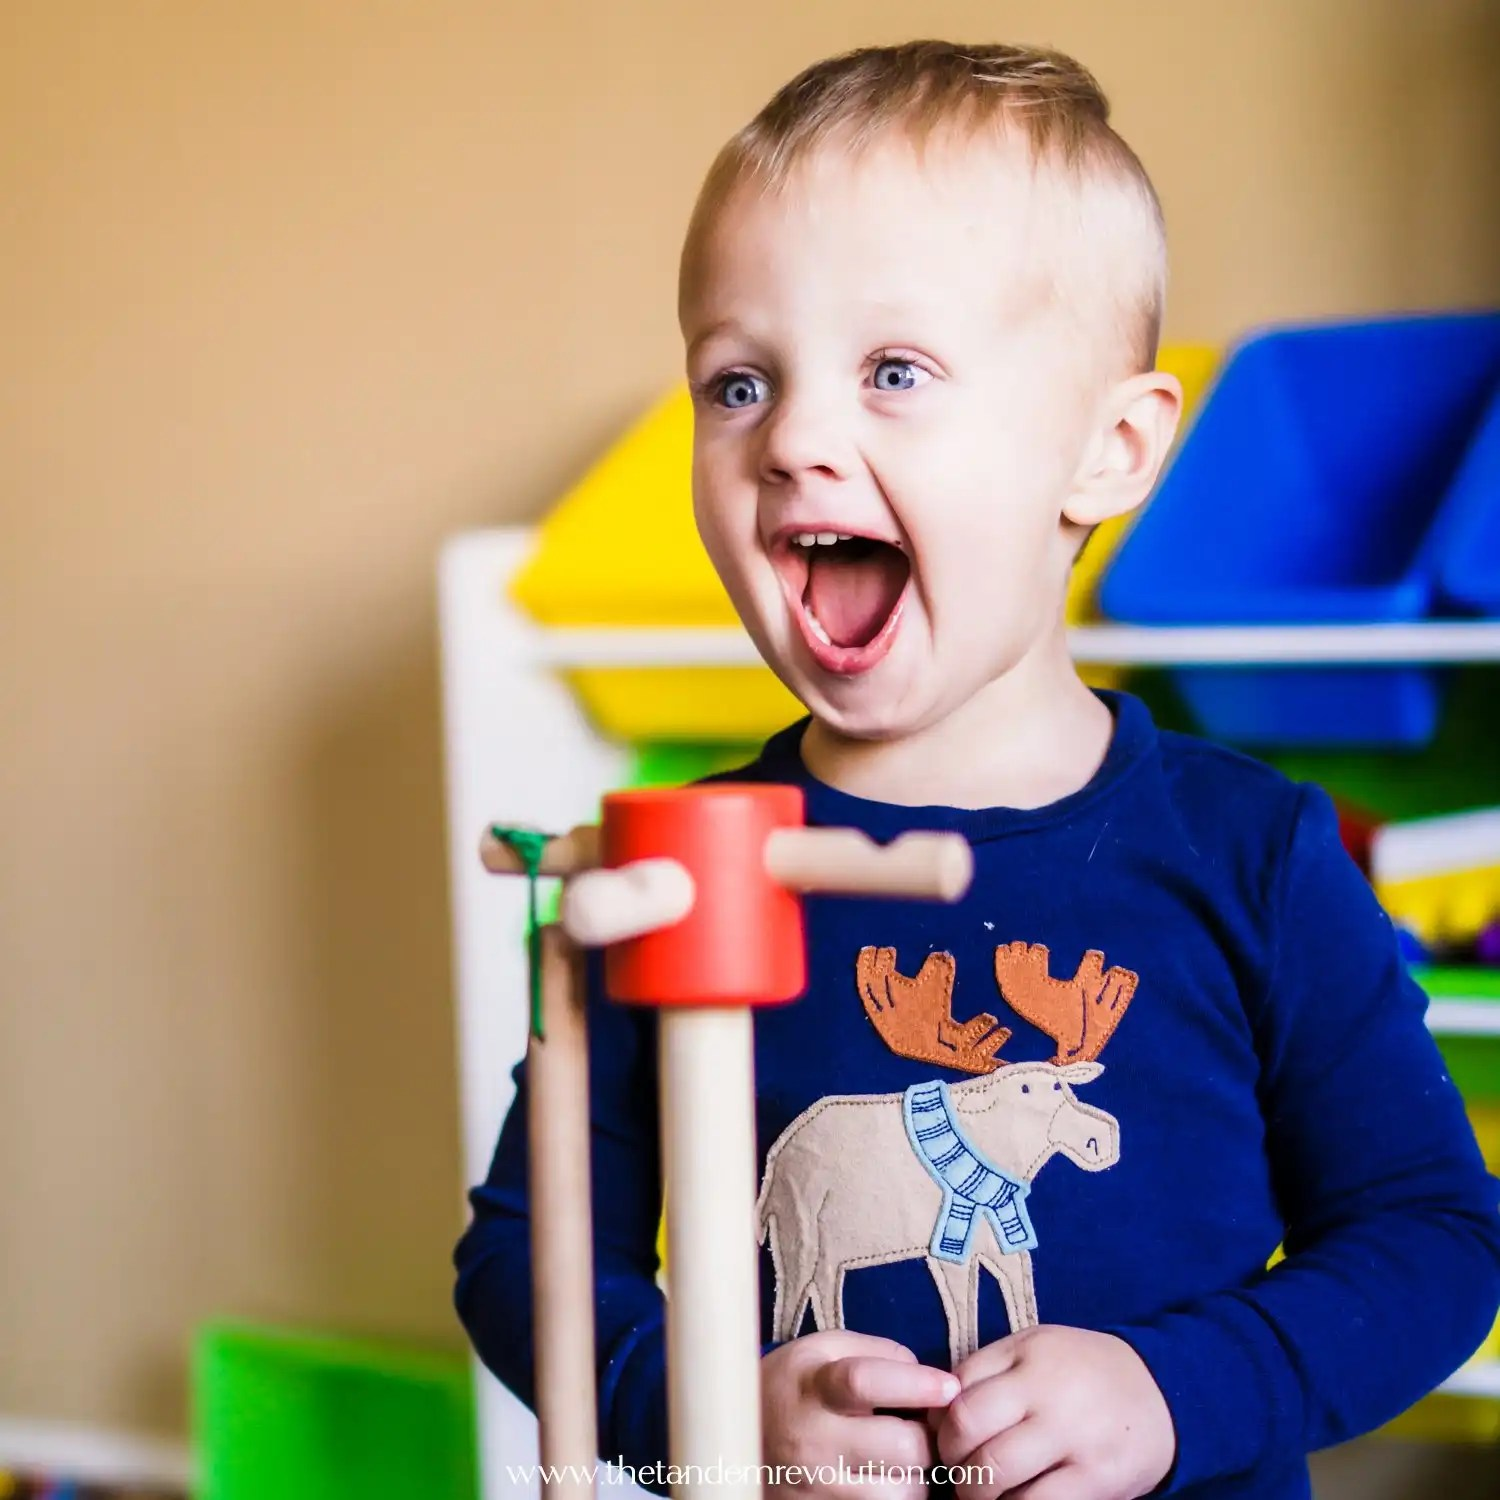 Happy toddler with a big smile on his face playing with toys